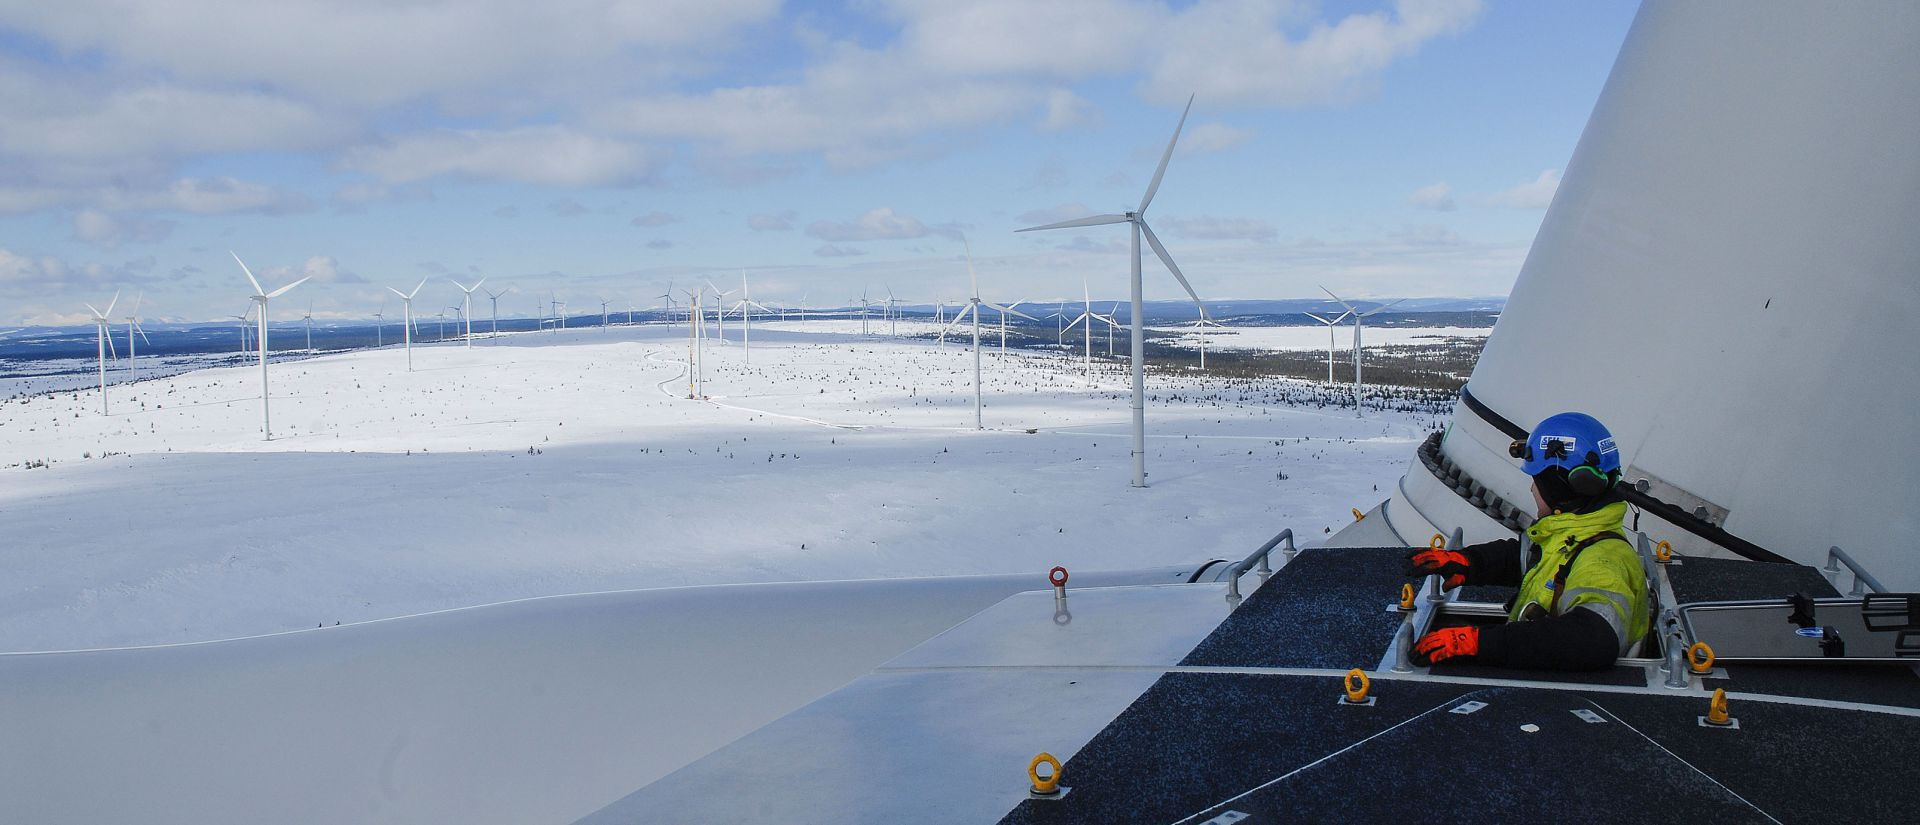 The BlaikenVind wind farm is located in northern Sweden, on the 65th parallel north.